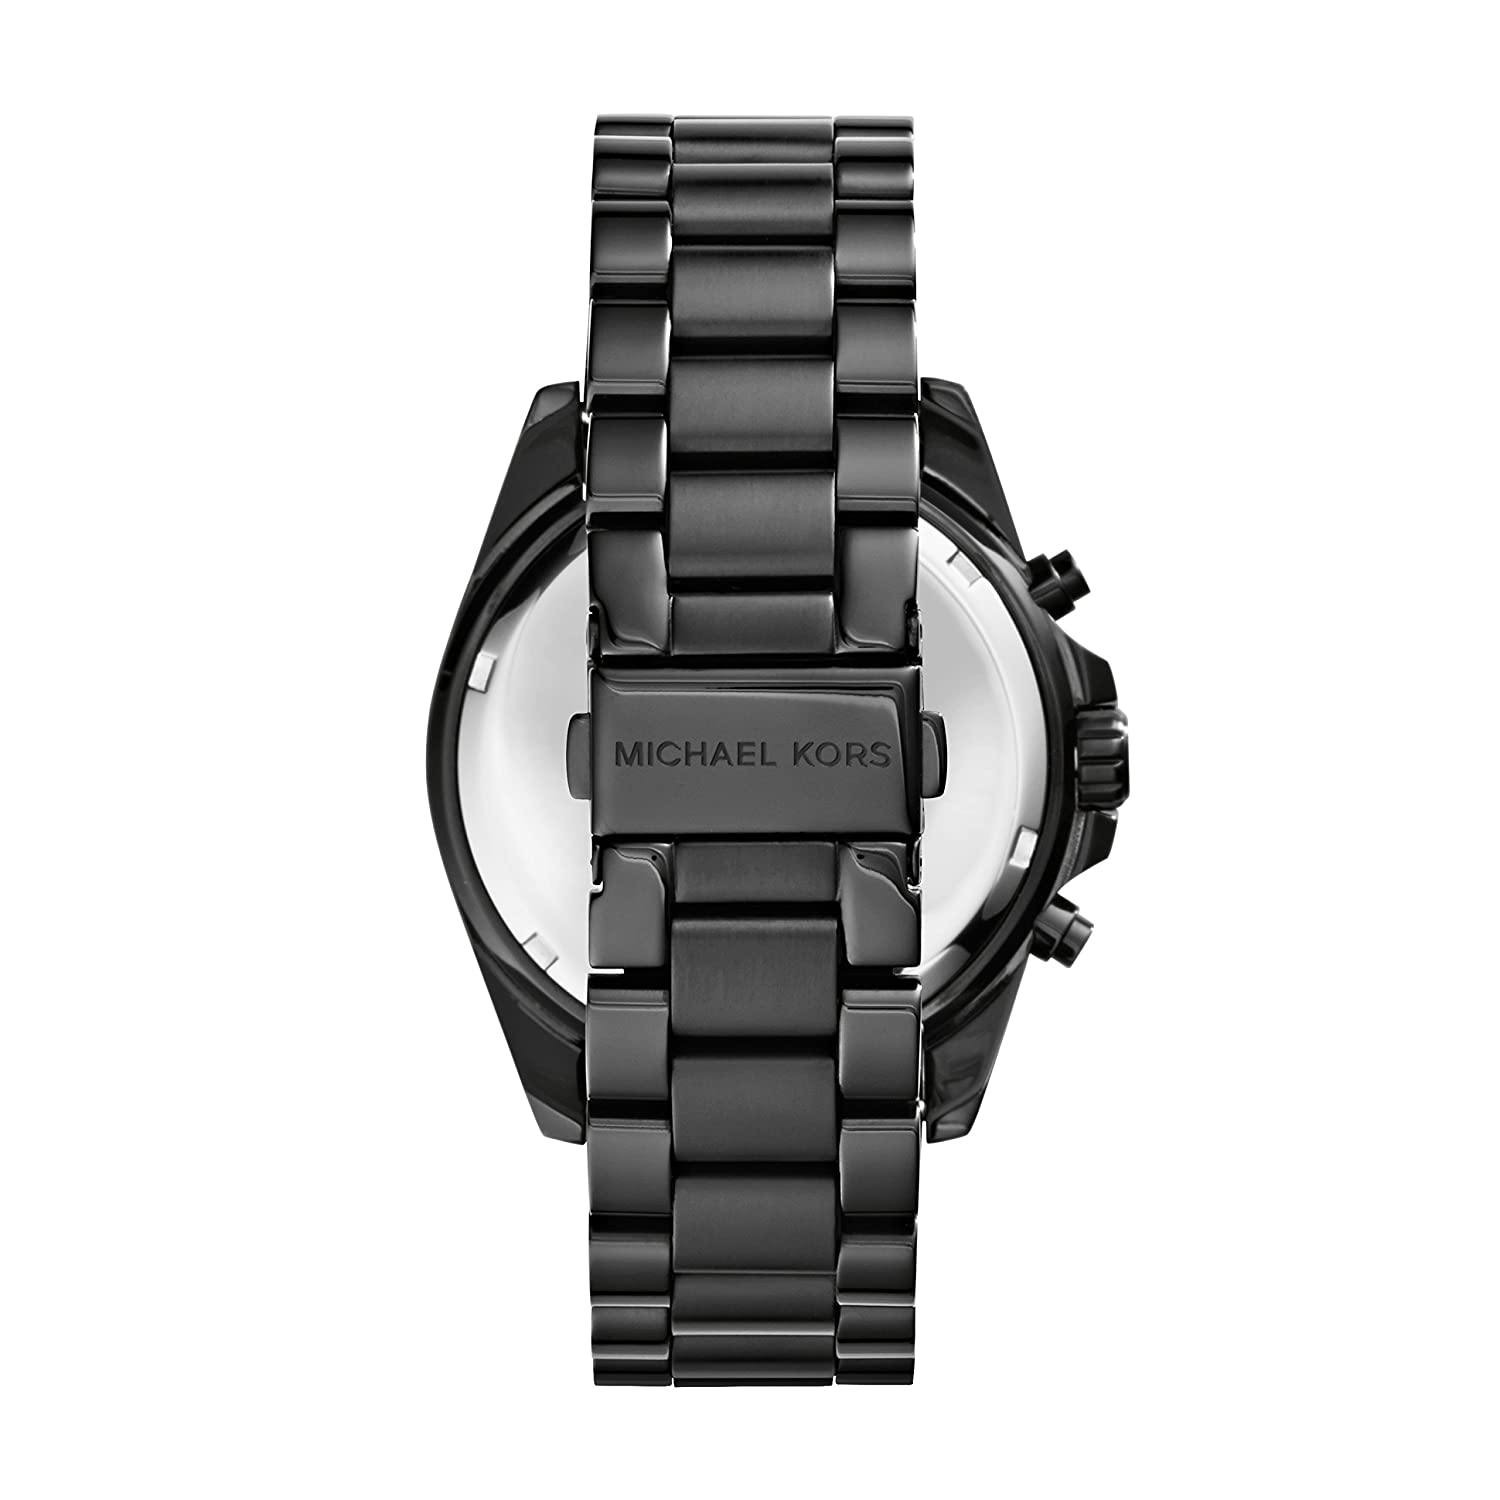 811c42ecae93 Amazon.com  Michael Kors Men s Bradshaw Black Watch MK5550  Michael Kors   Watches